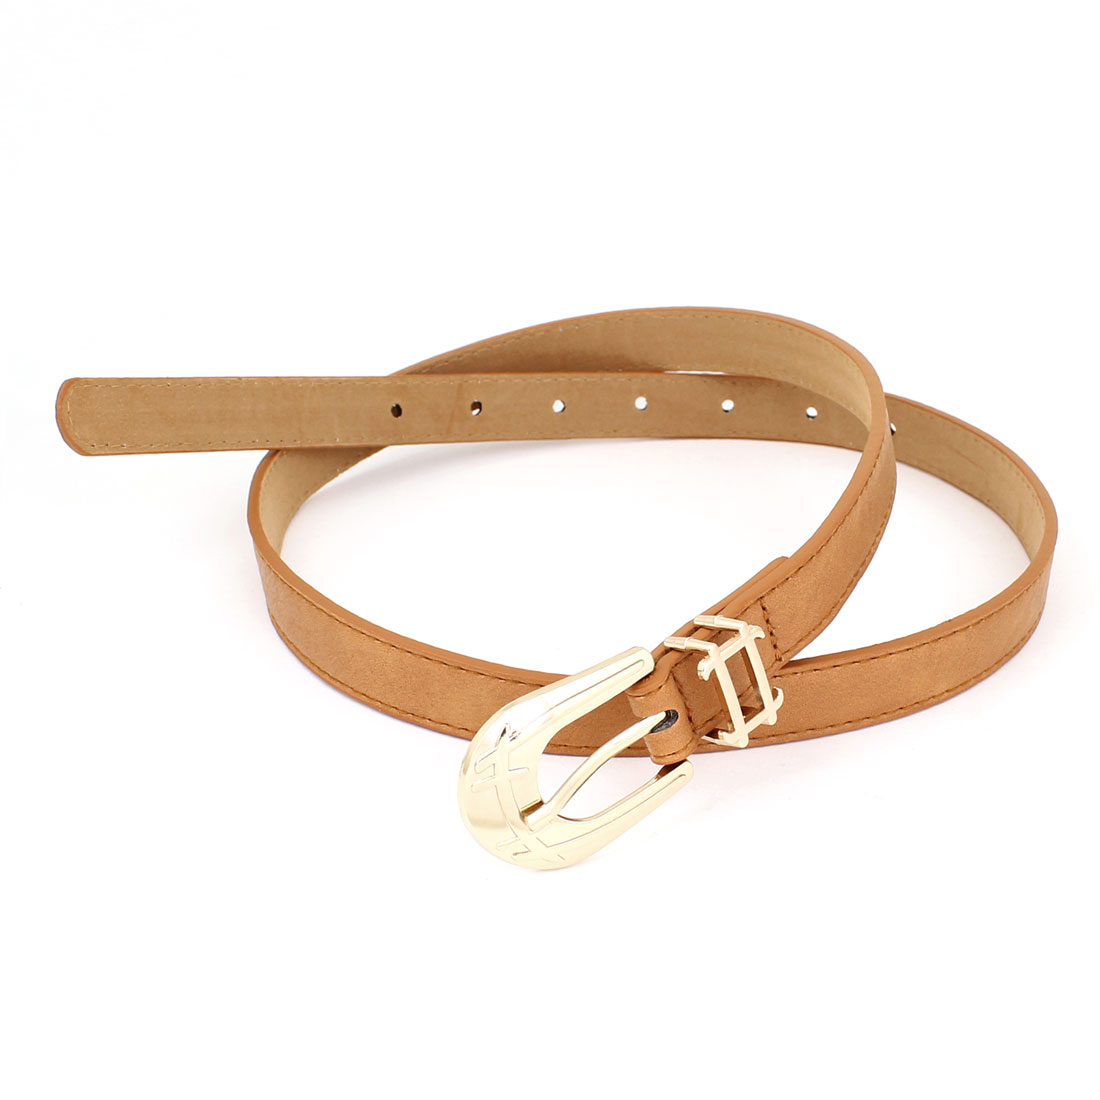 Ladies Single Pin Buckle 7 Hole Faux Leather Adjustable Thin Waist Belt Brown